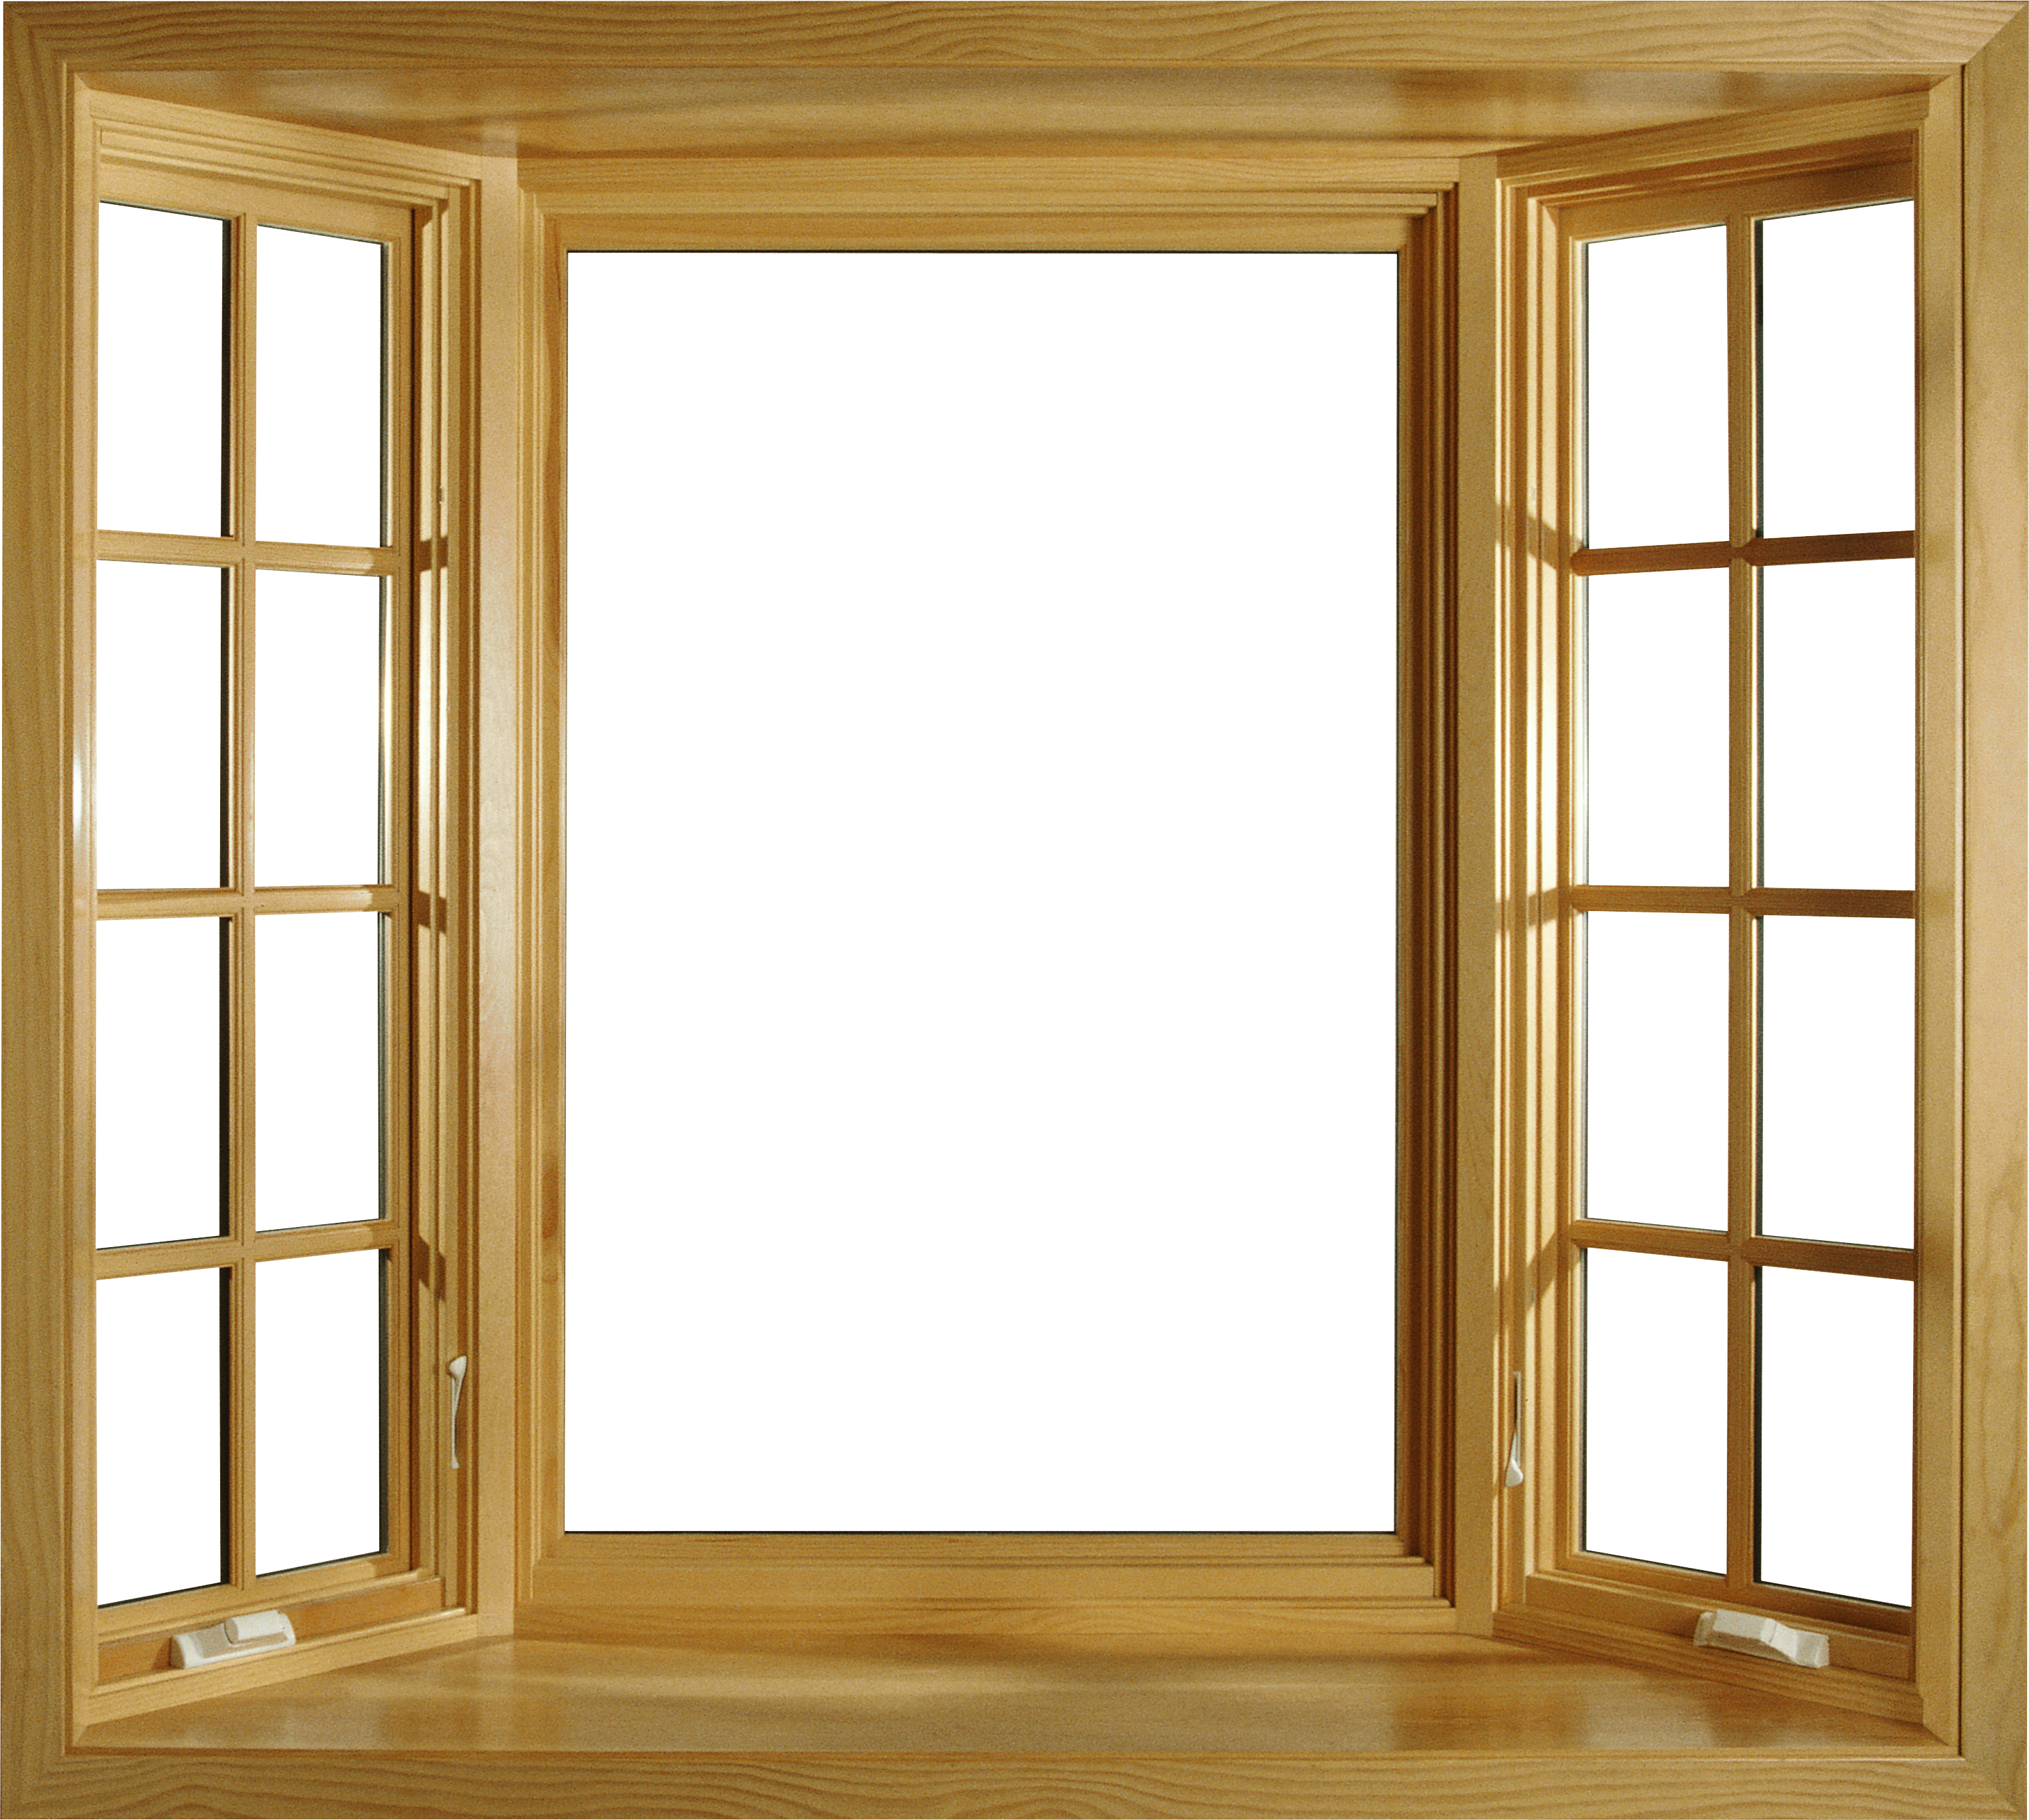 Images free download open. Window frame png